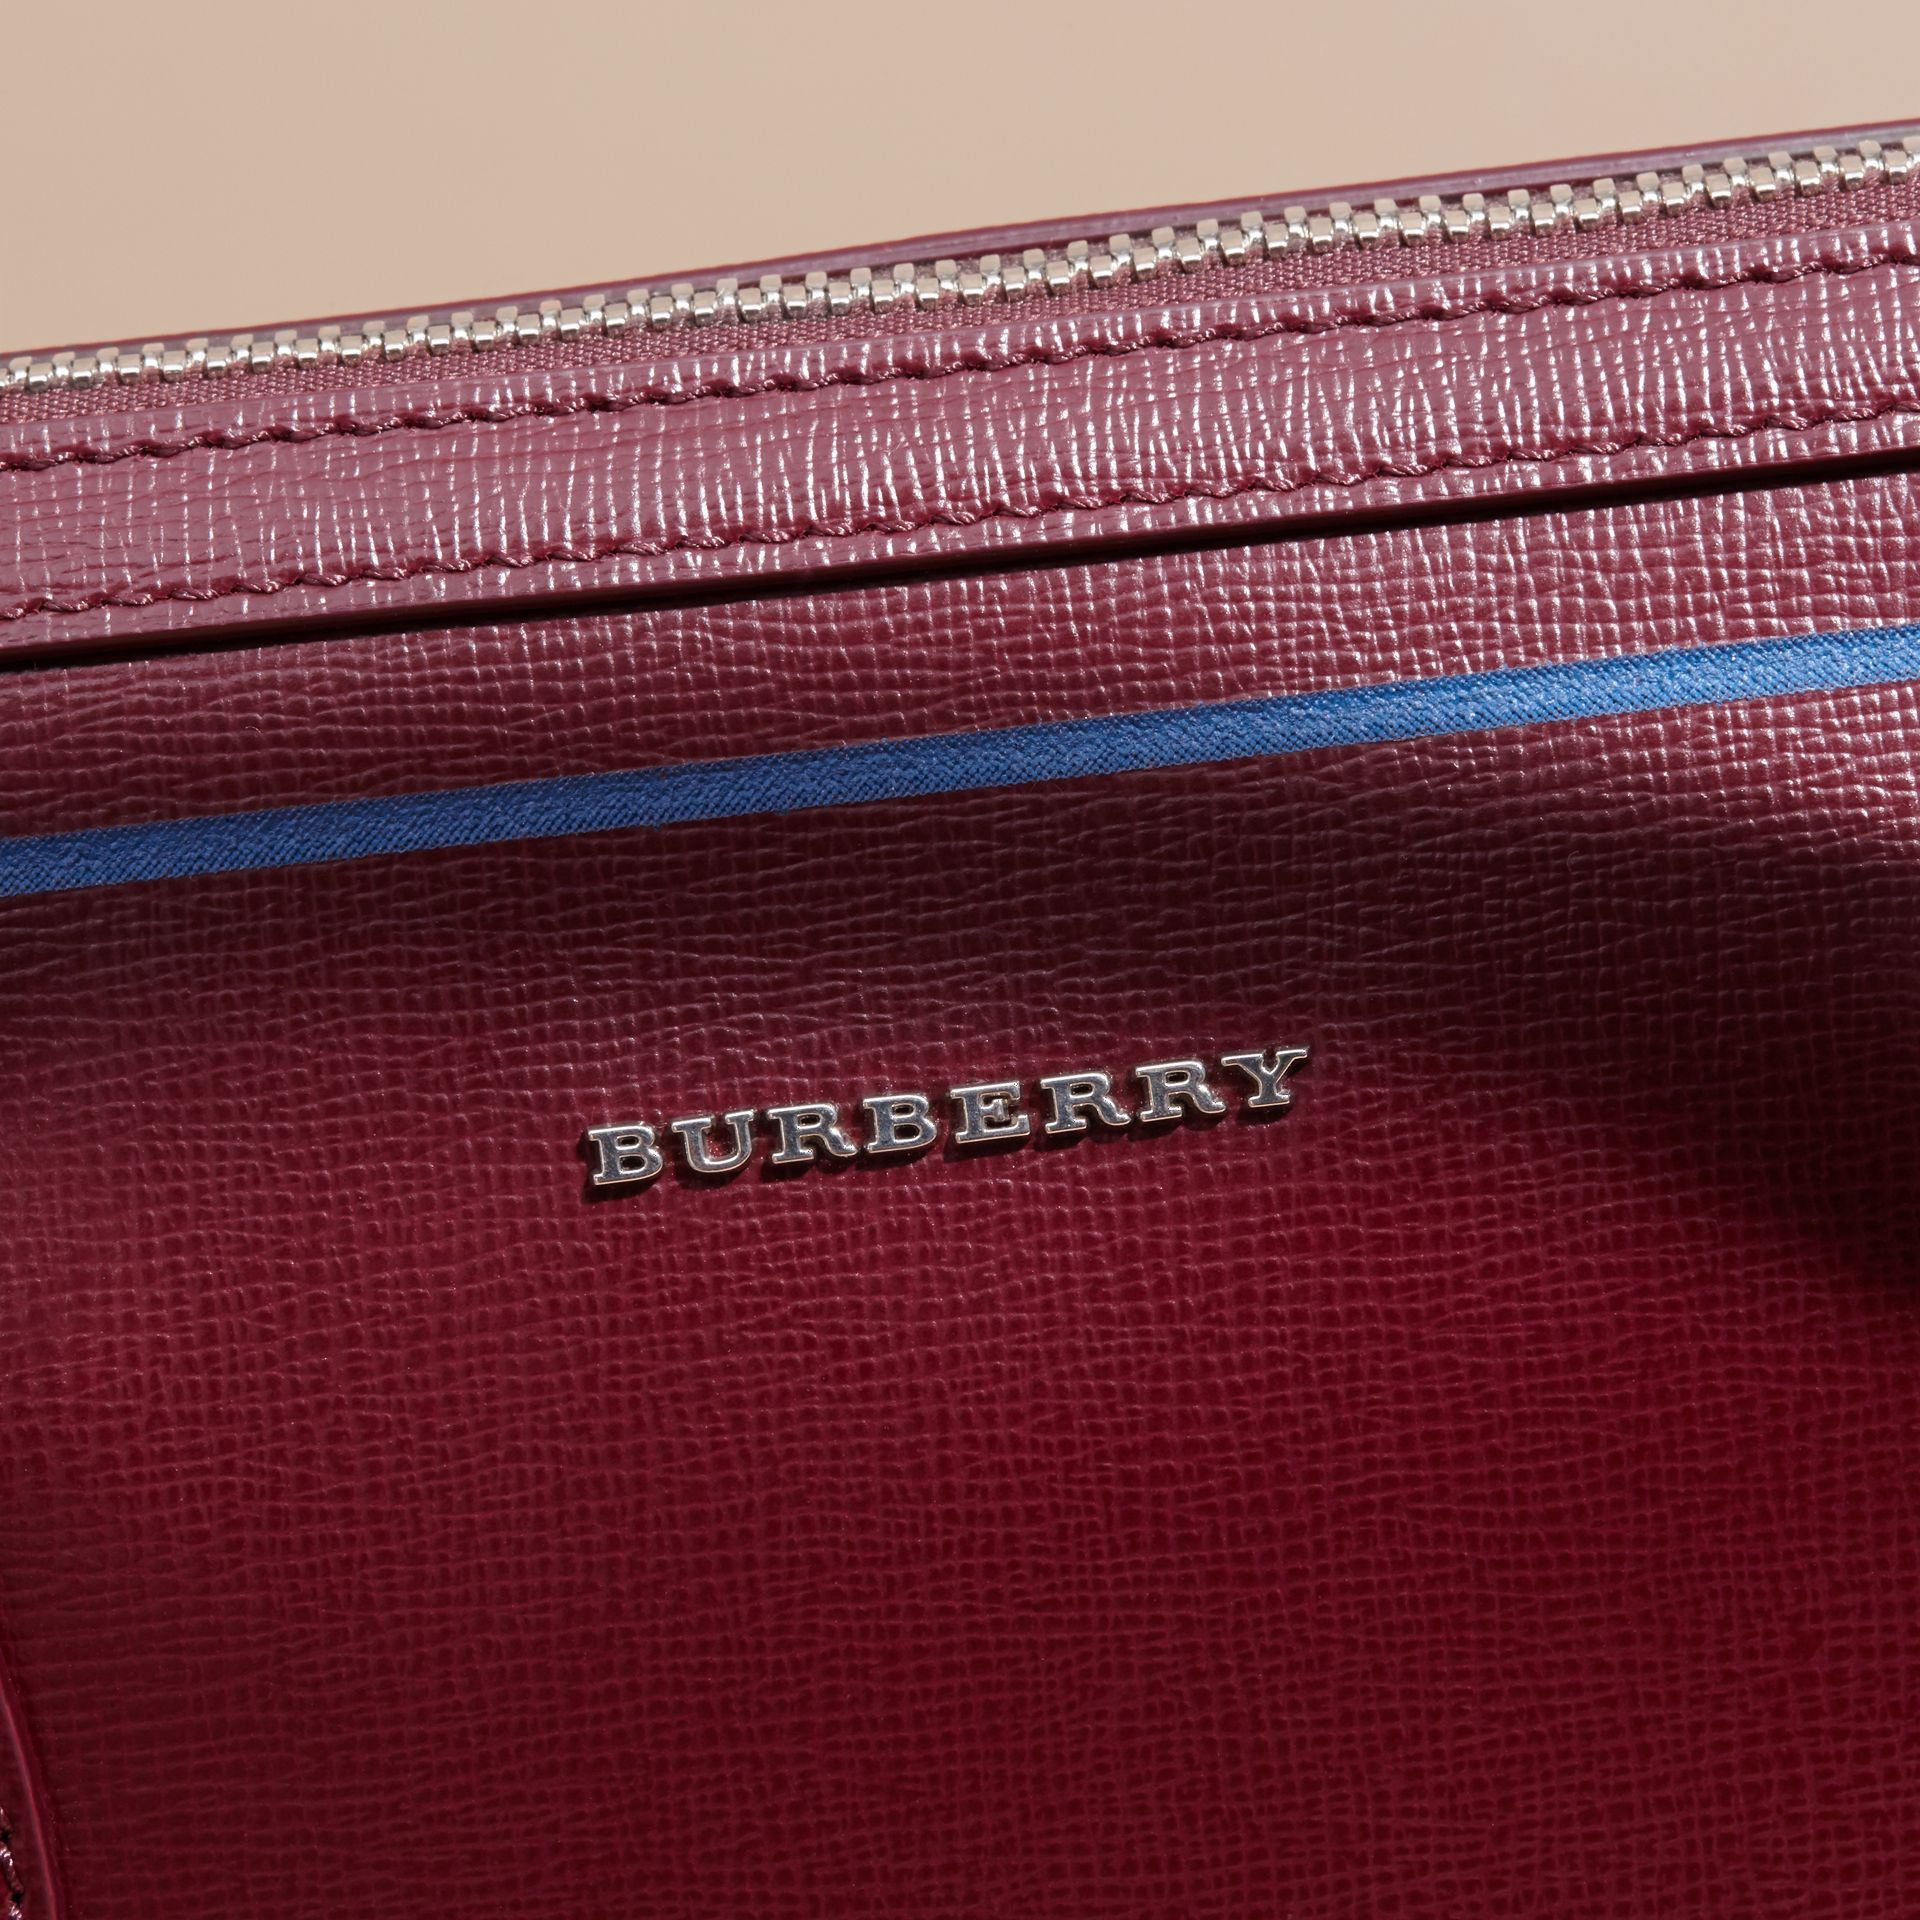 Burgundy red The Slim Barrow Bag in London Leather with Border Detail Burgundy Red - gallery image 7